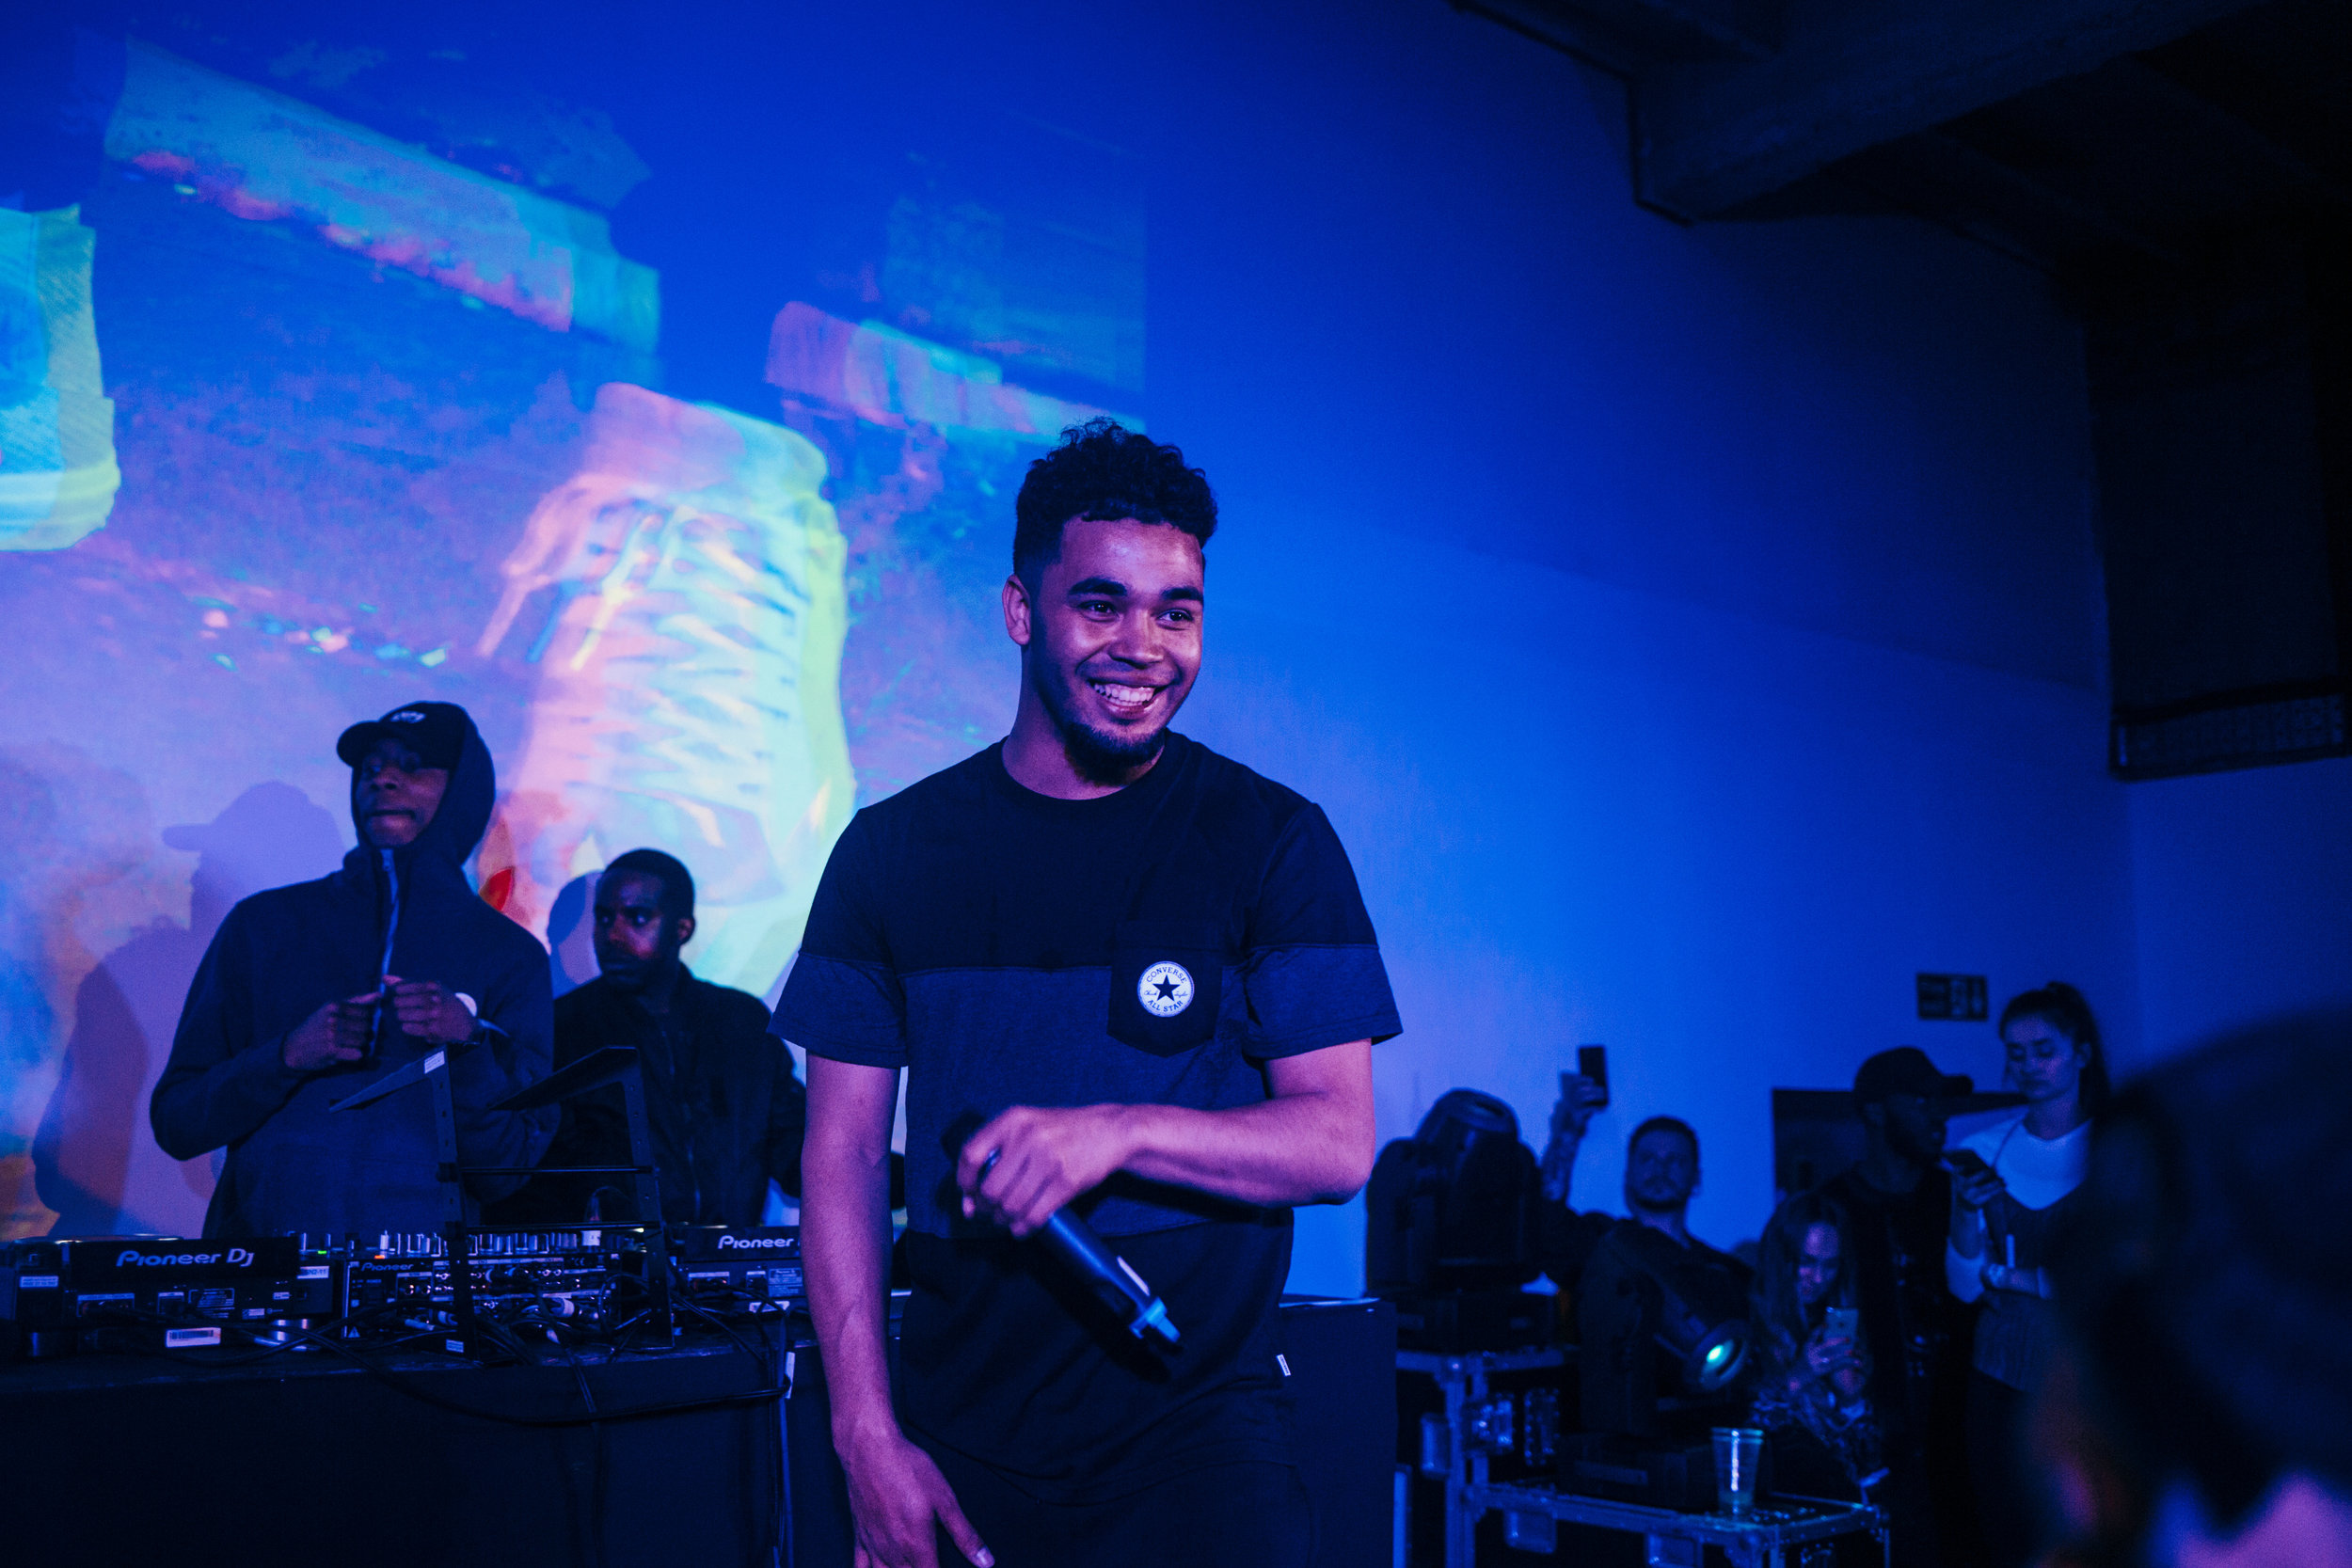 WHAT - Nerds delivered a multi-room experience in central London, creatively showcasing product and campaign videos at an epic scale within a warehouse setting where UK rap star Yungen and a supporting line-up delivered a high-energy performance.